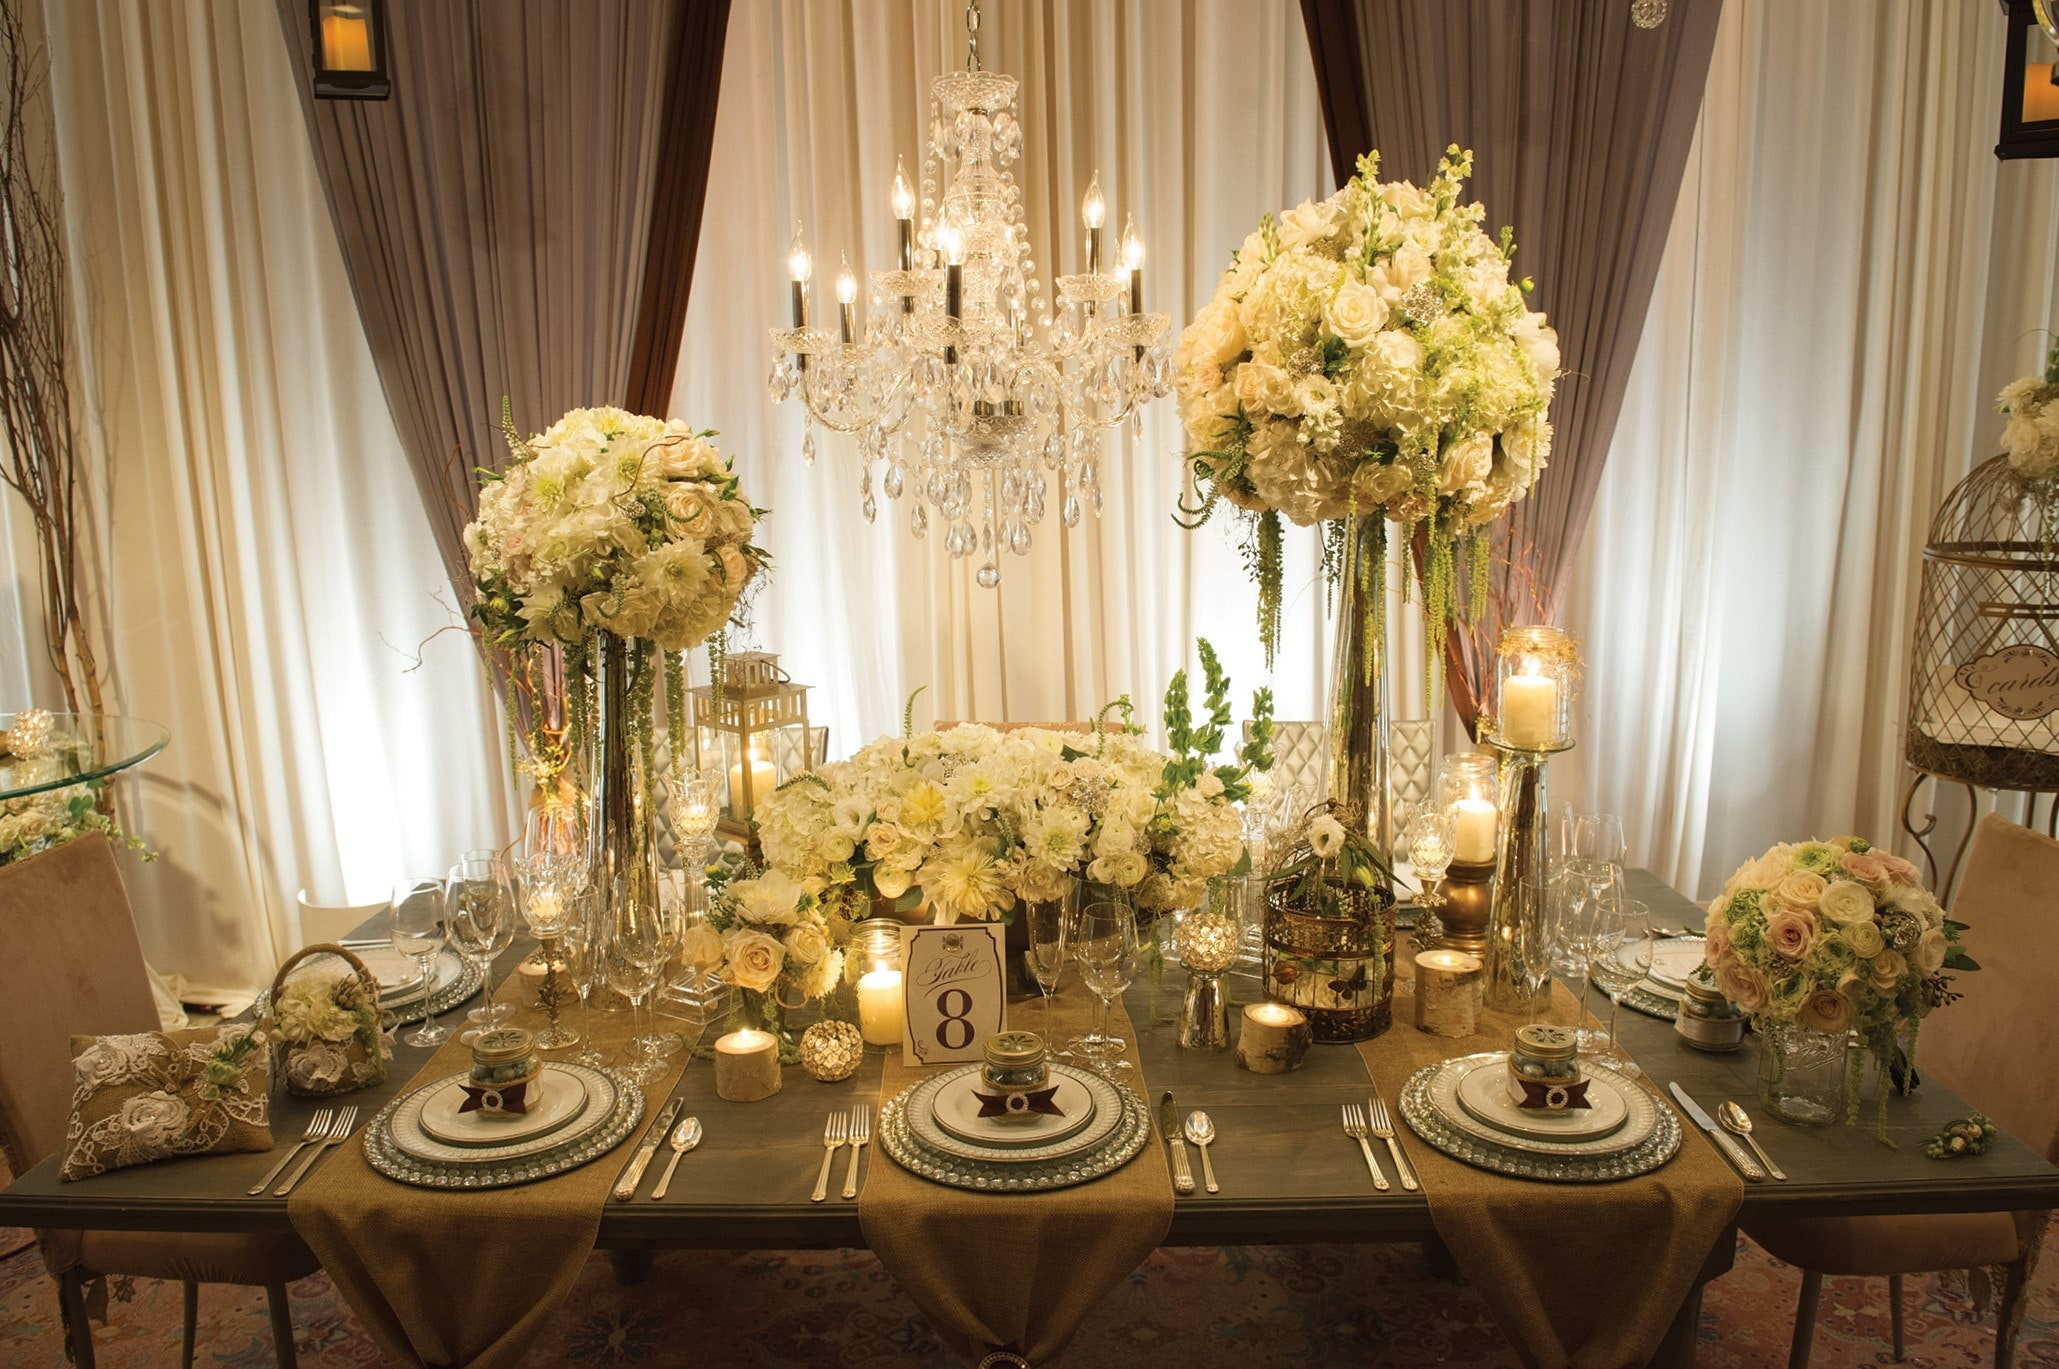 Captivating Head Table Decor Features Beautiful Natural White Roses With  Some Greenery Around. The Table